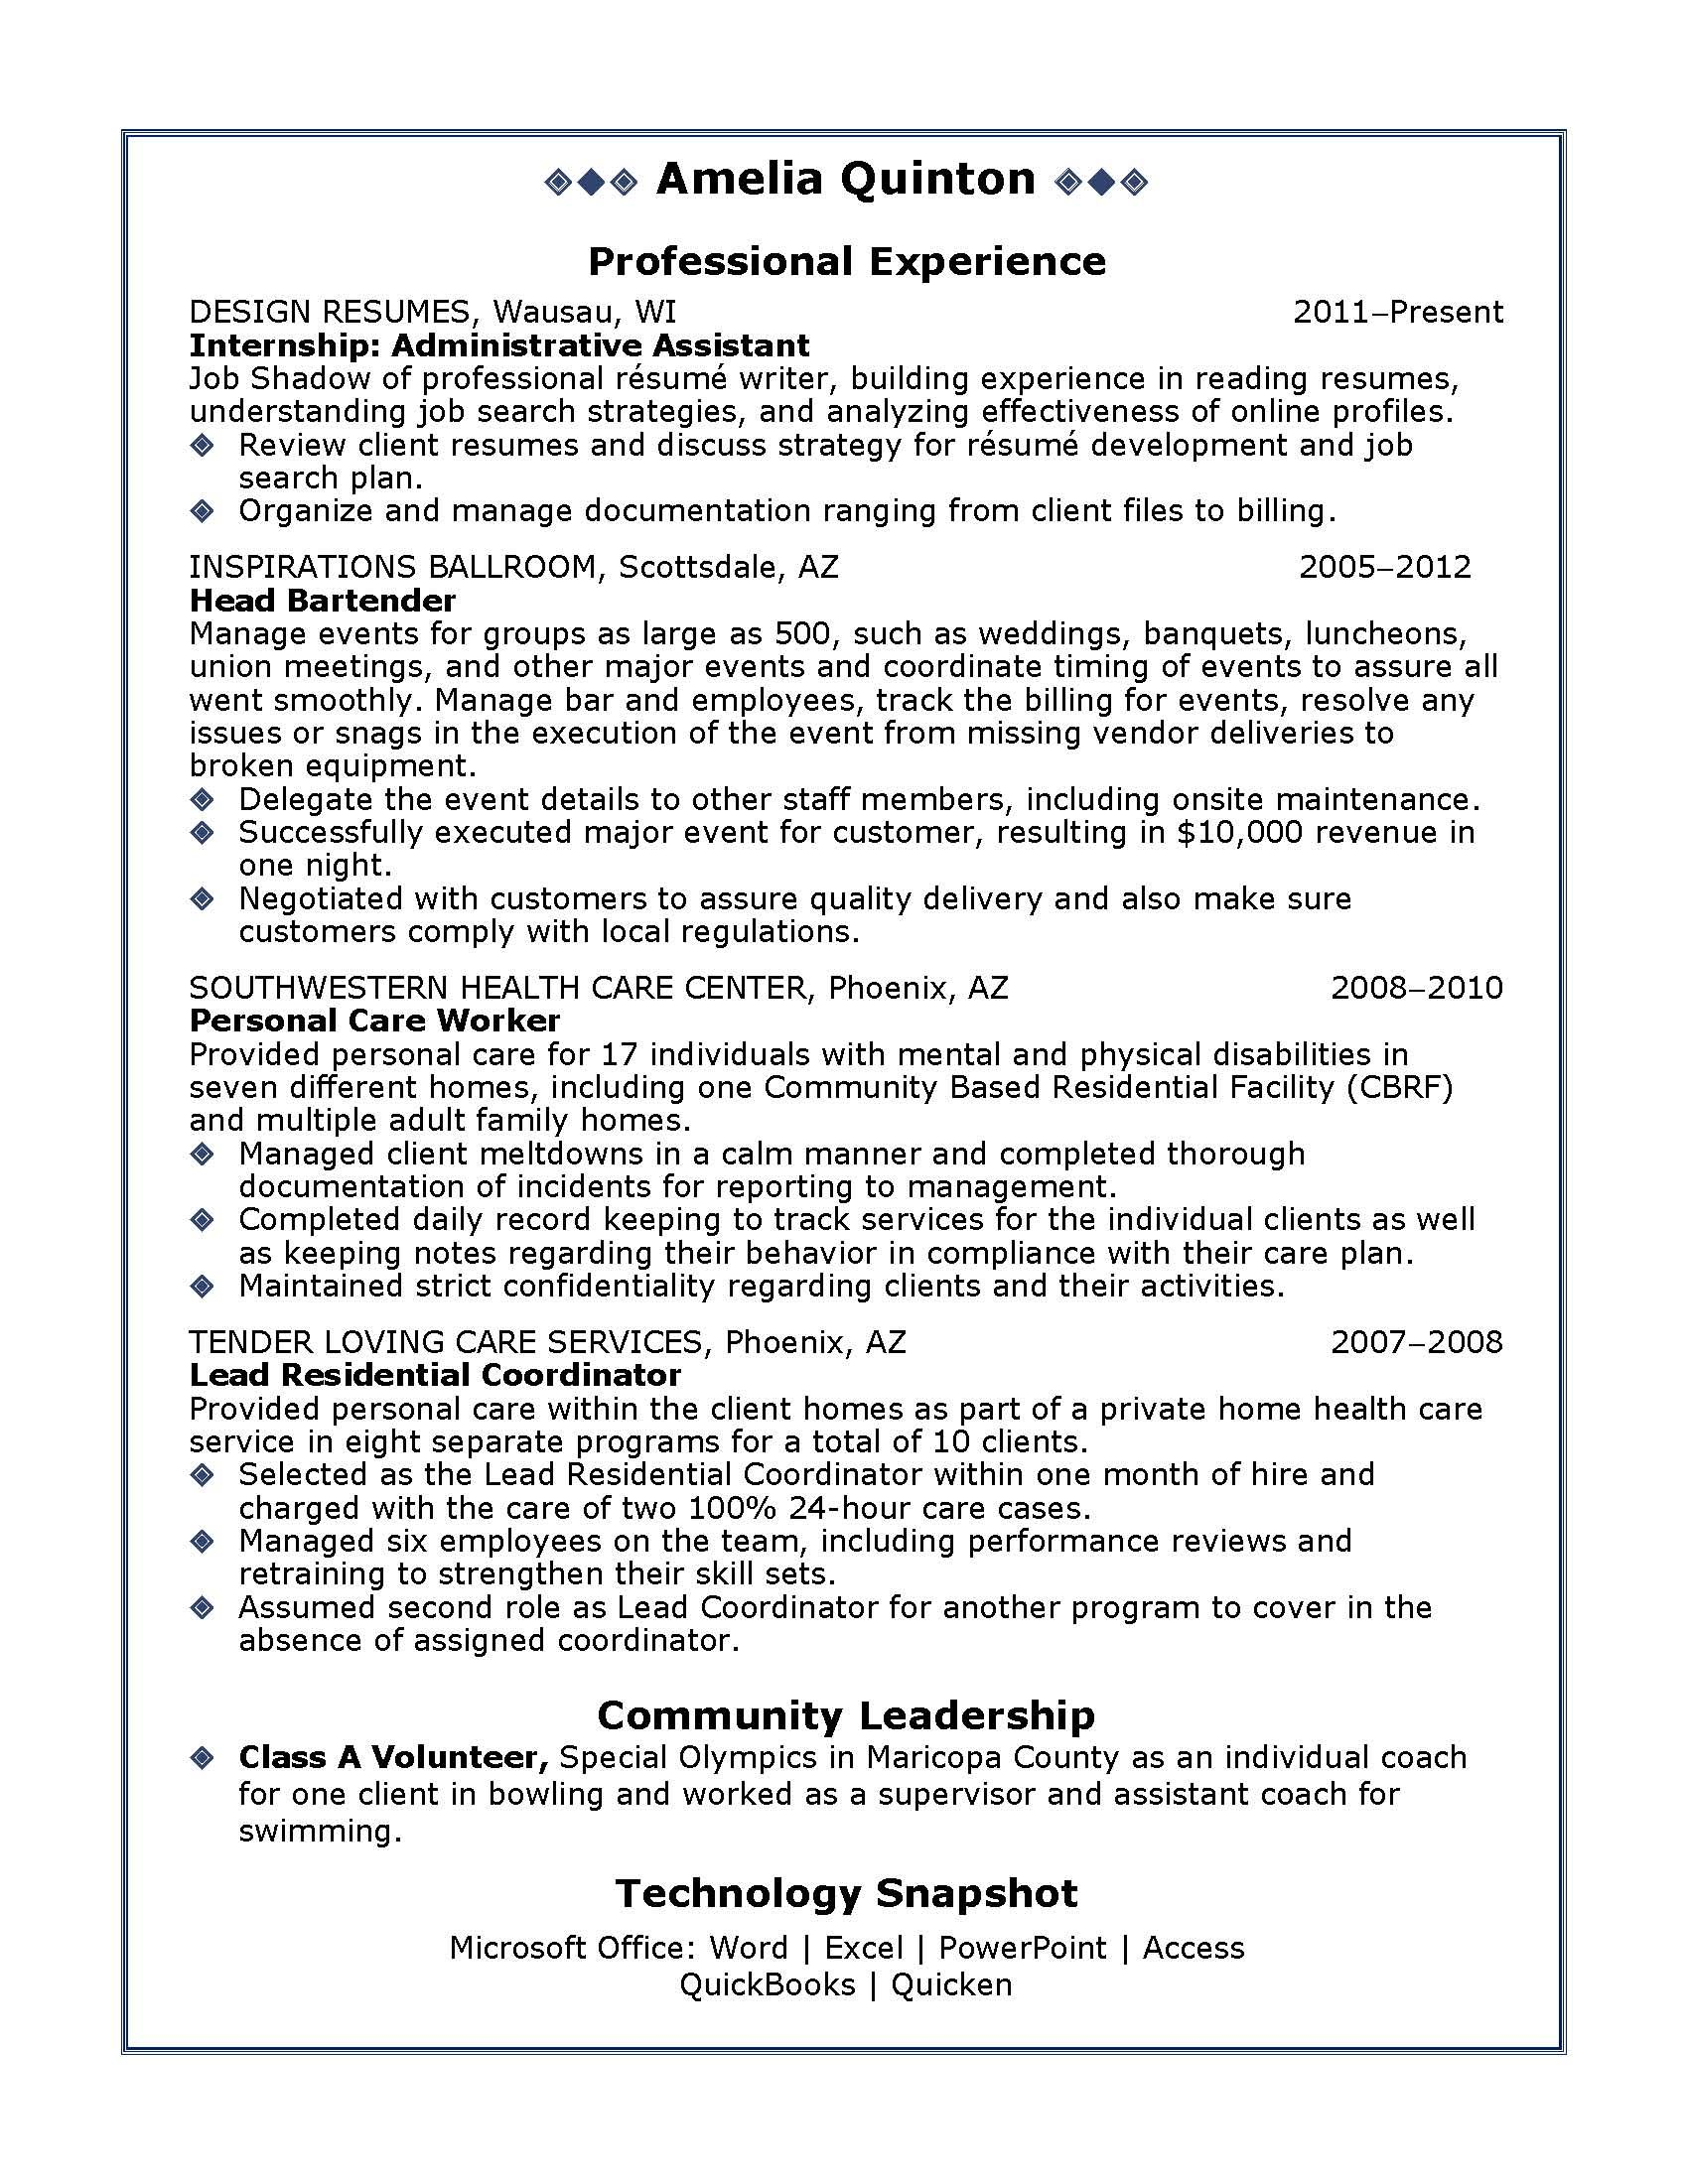 Human Resources Resume Sample Triage Nurse Resume Sample  Httpwwwresumecareertriage